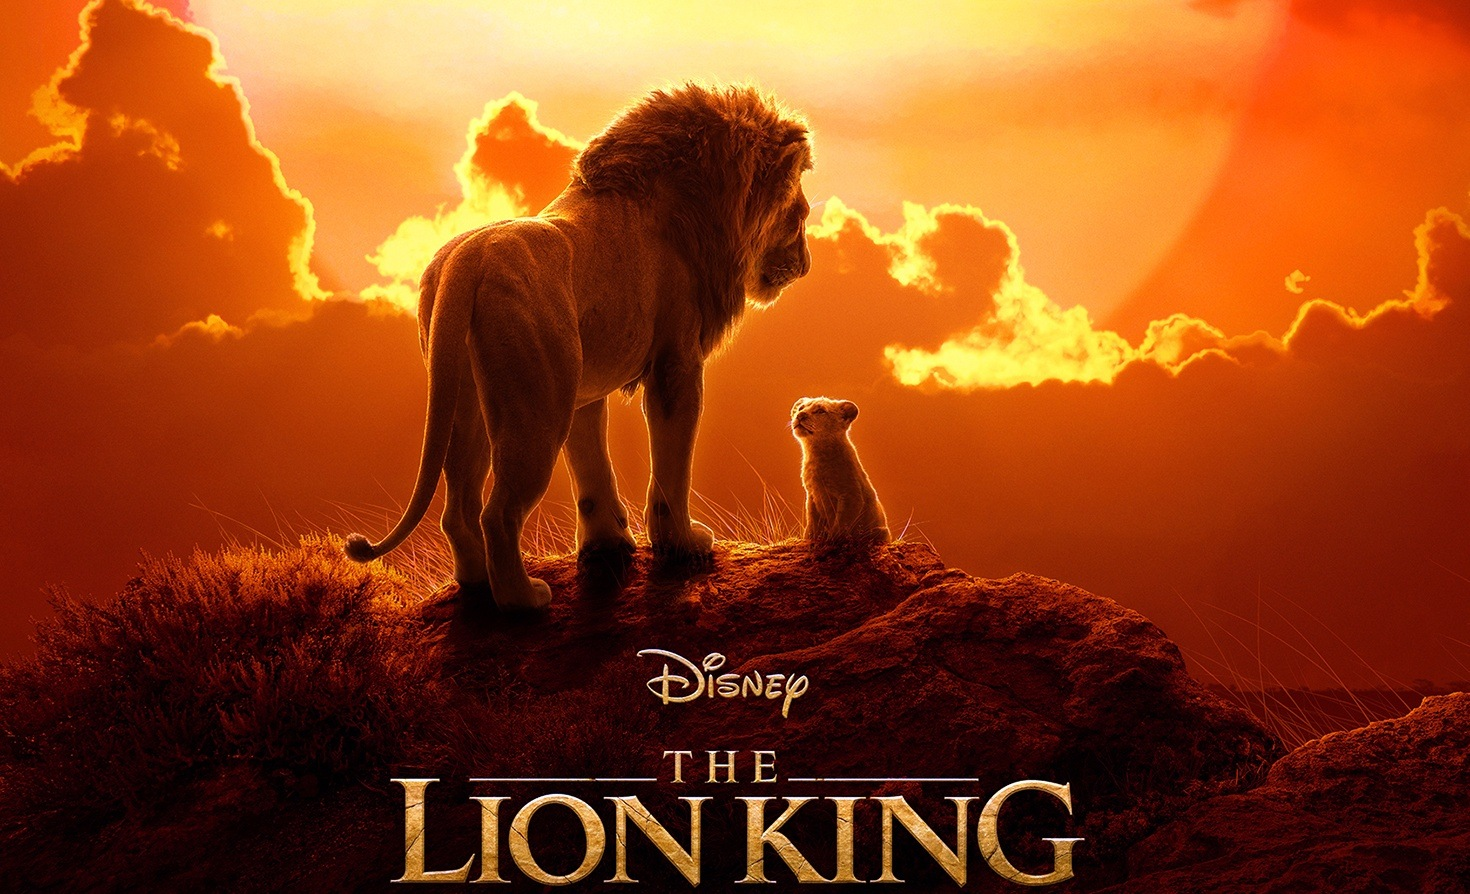 The Lion King opening poised to set new box office records